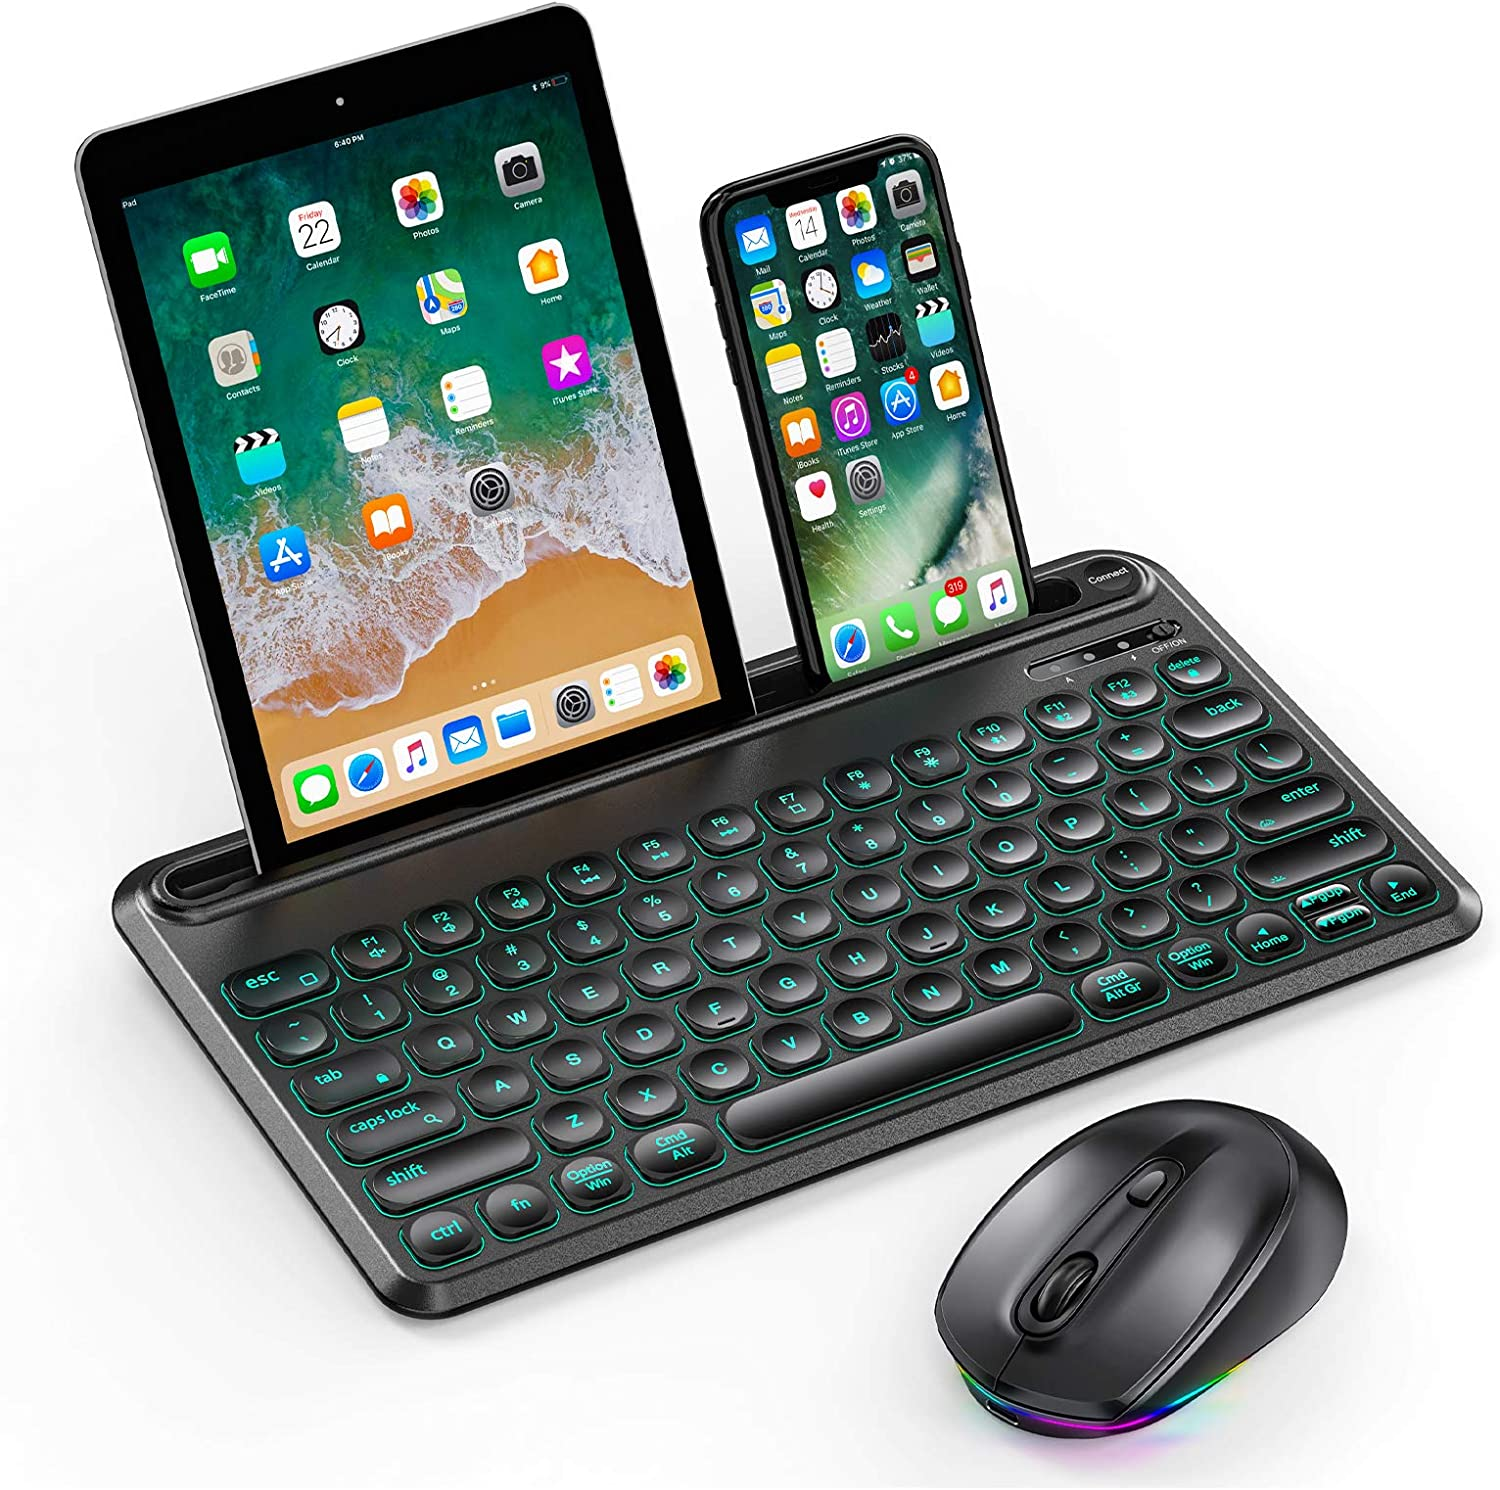 BacklitBluetooth KeyboardandMouse, Jelly Comb Multi-Device LED Illuminated Wireless Keyboard RGB Mouse for Mac OS, iOS, Android, Windows, iPad Tablet iPhone PC - Black